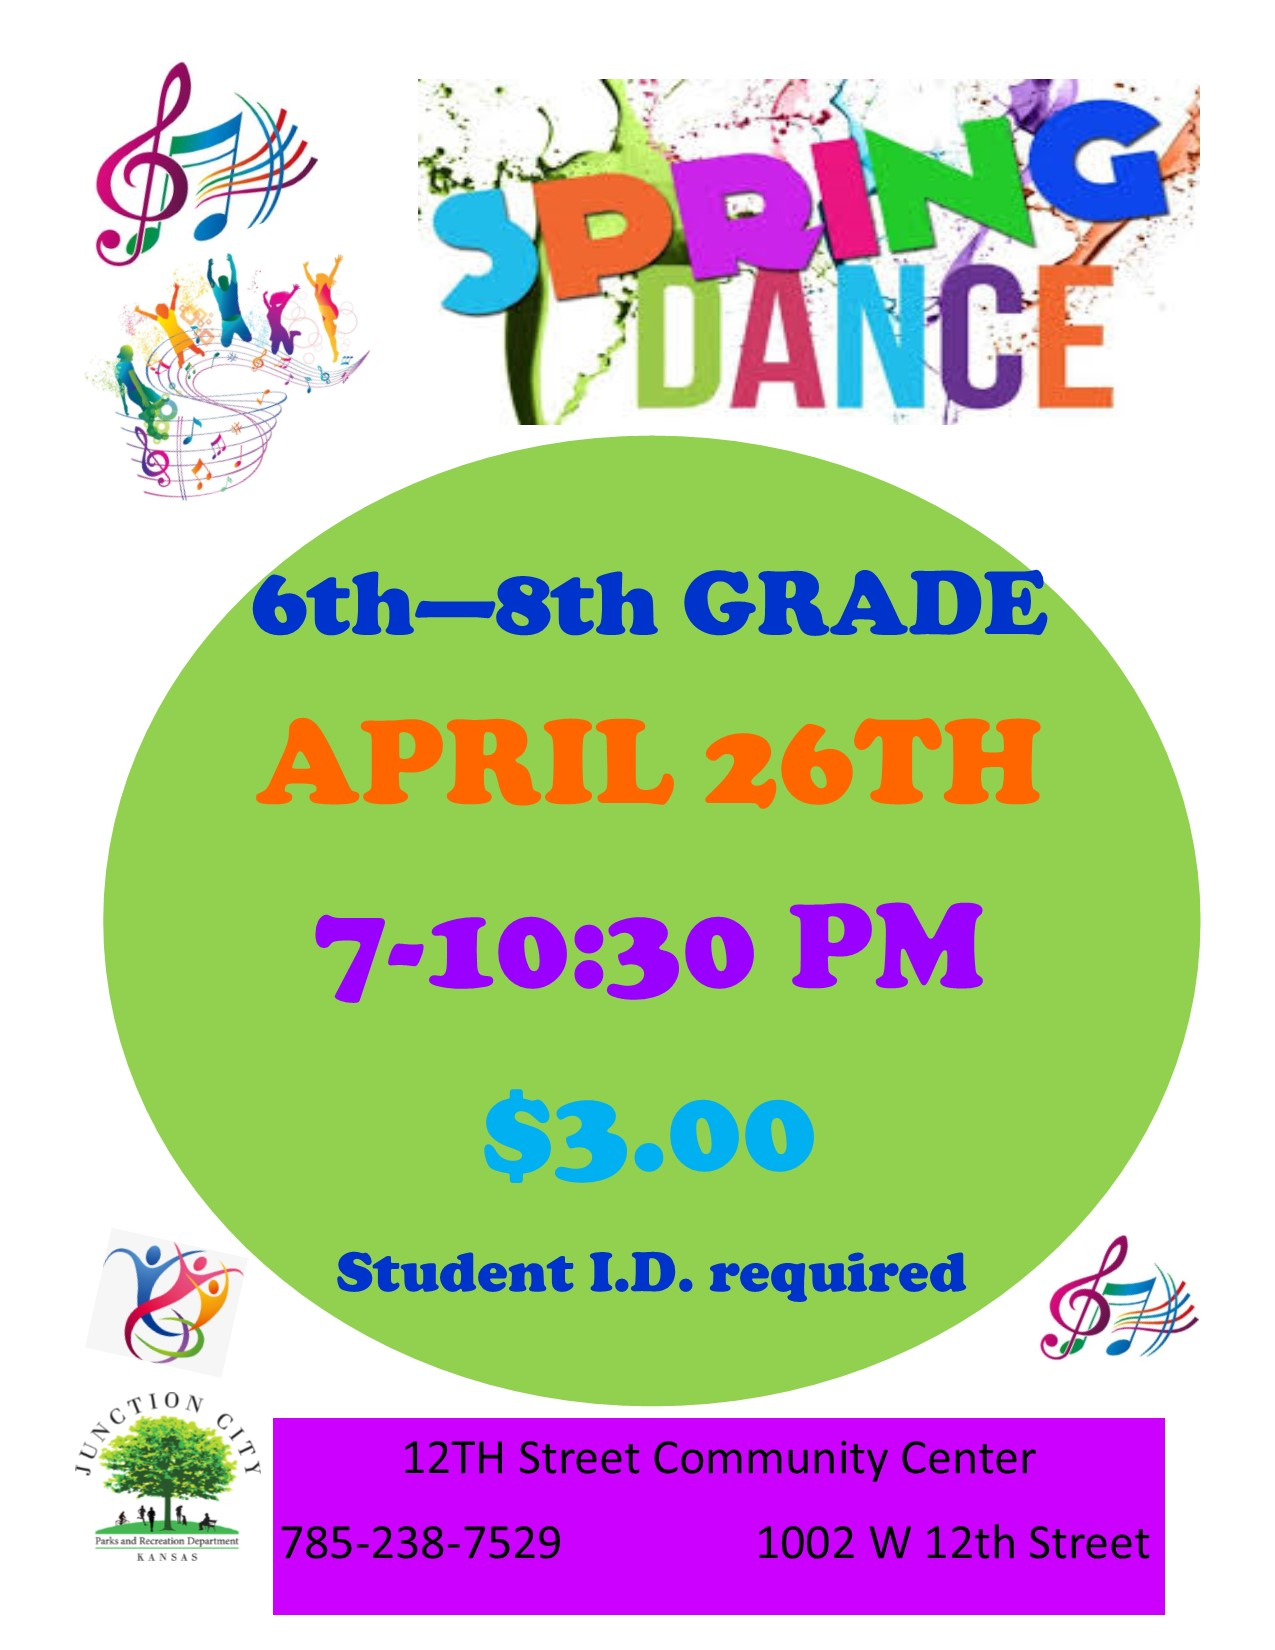 6th-8th grade students are invited to the Spring Dance! April 26th 7-10:30 PM 12th Street Community Center 1002 W 12th Street 785-238-7529